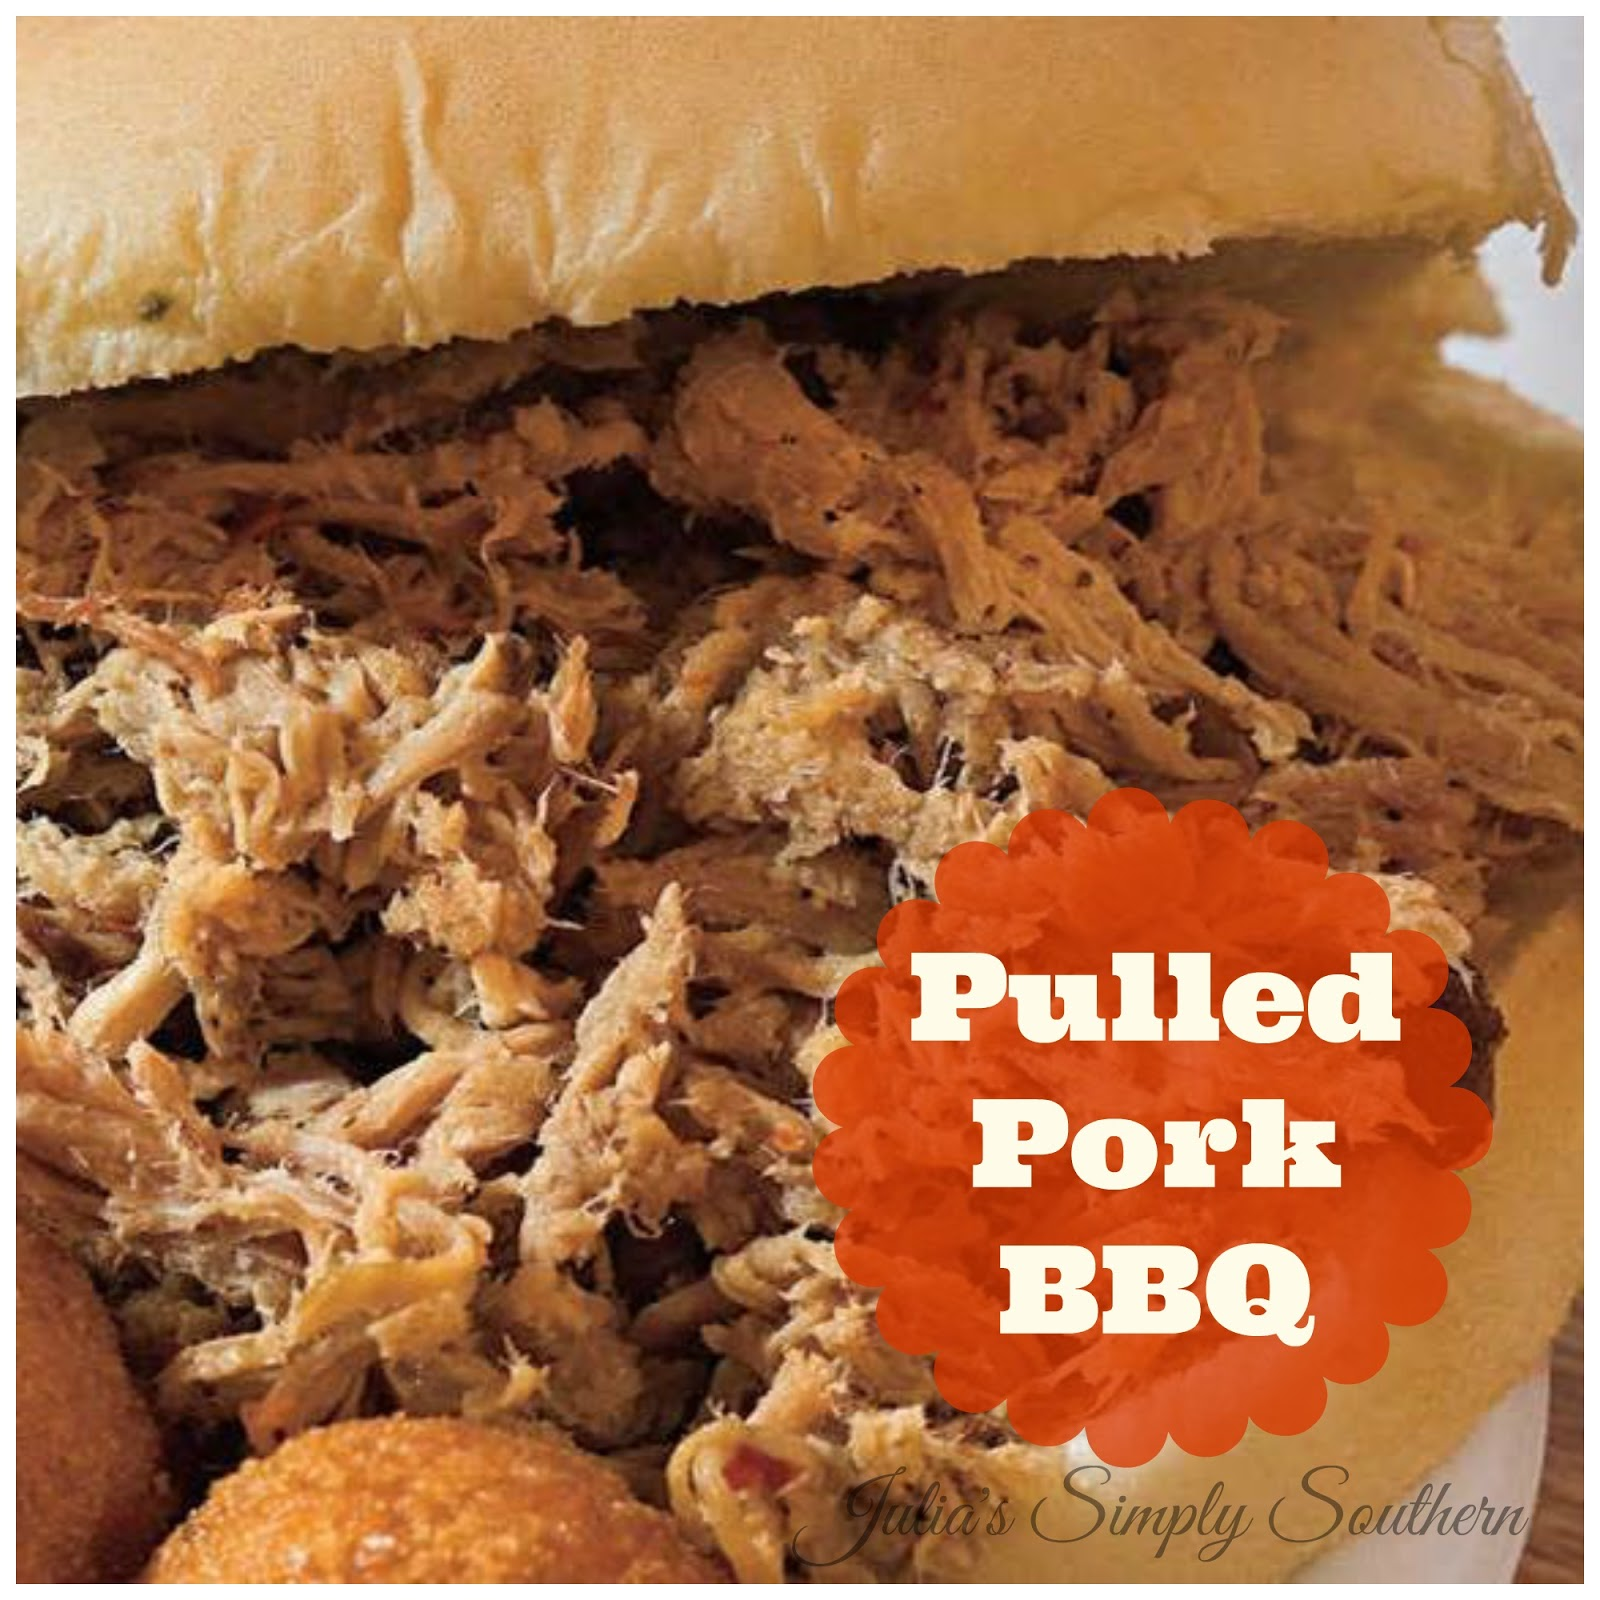 Southern Bbq Pulled Pork